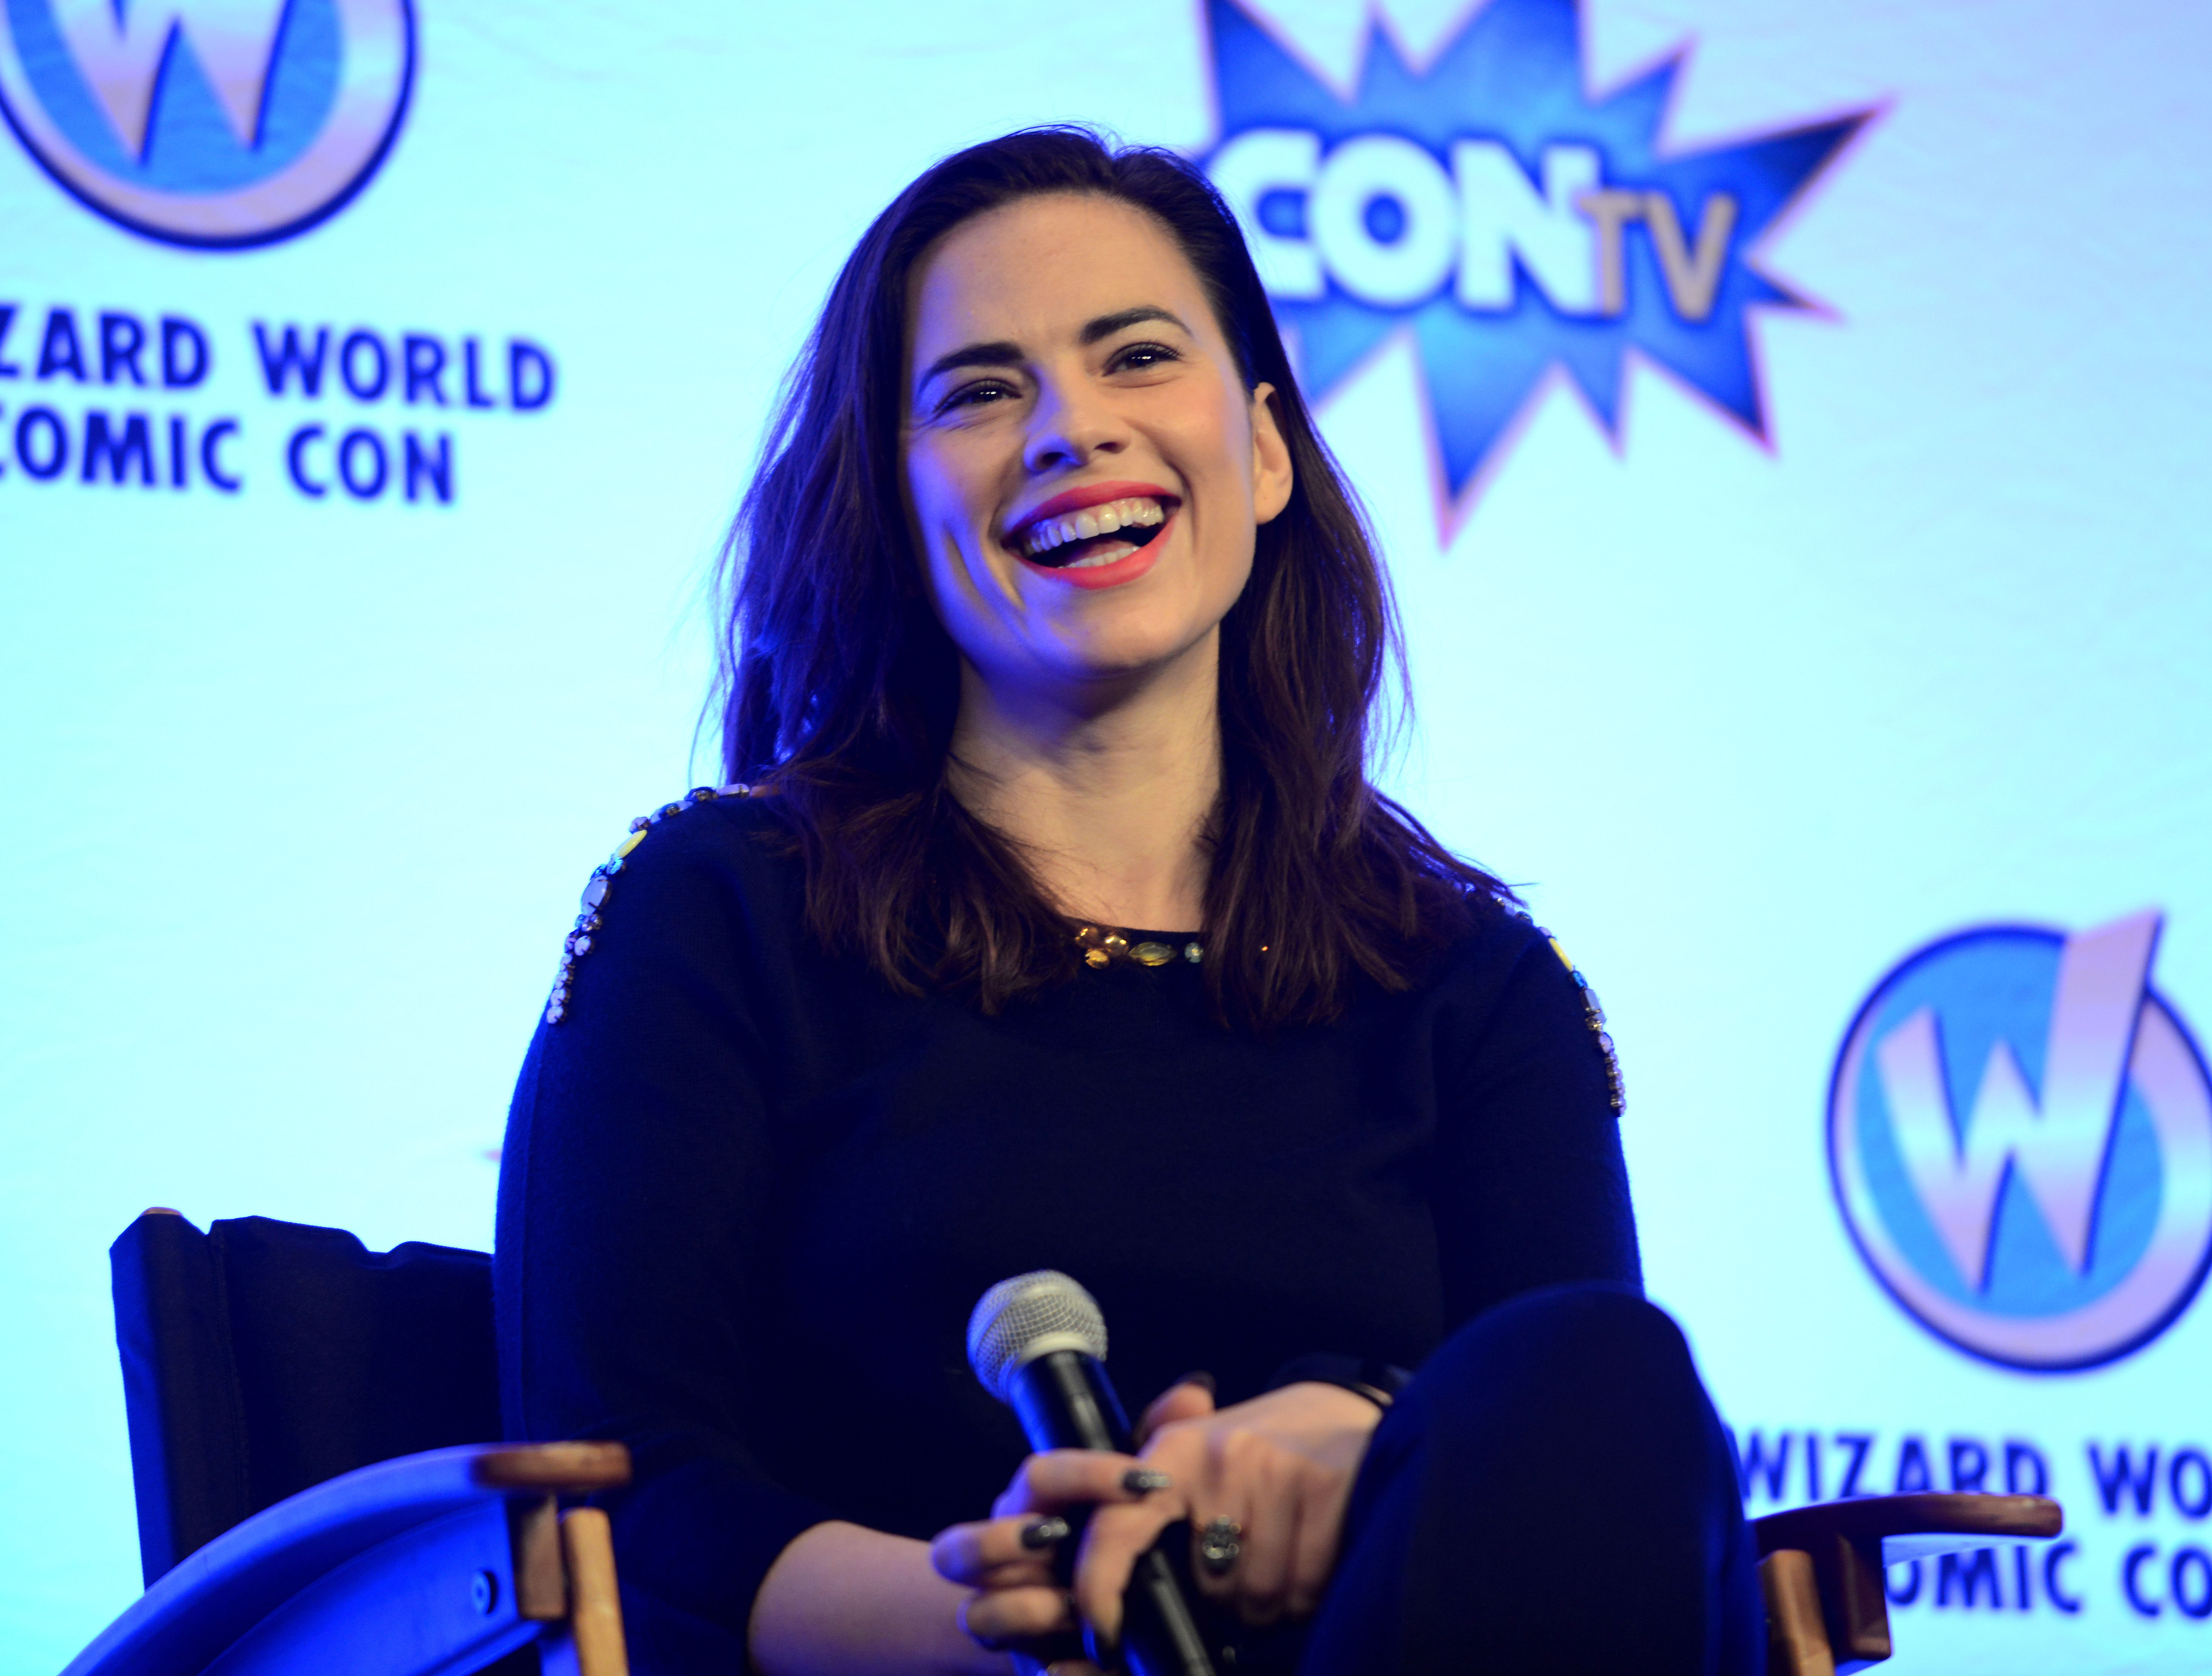 Actress Hayley Atwell on day 2 of Wizard World Comic Con New Orleans held at New Orleans Morial Convention Center on January 9, 2016 in New Orleans, Louisiana.  Albert L. Ortega—Getty Images